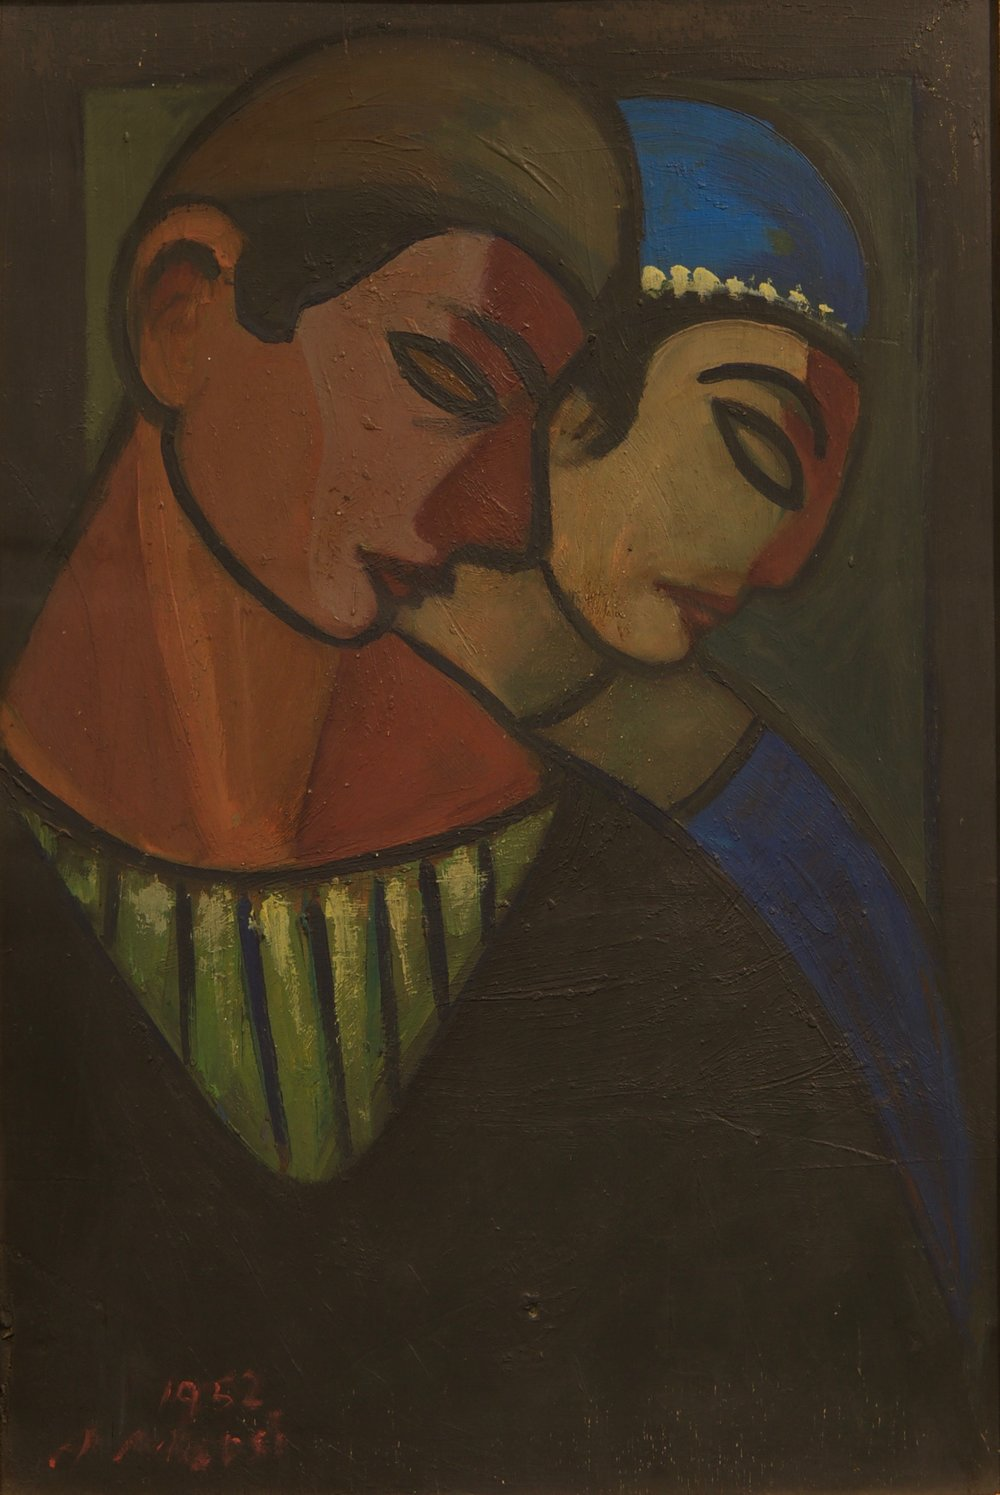 Ahmed-Morsi-Untitled-(Mediterranean-Profiles)-1952.jpg